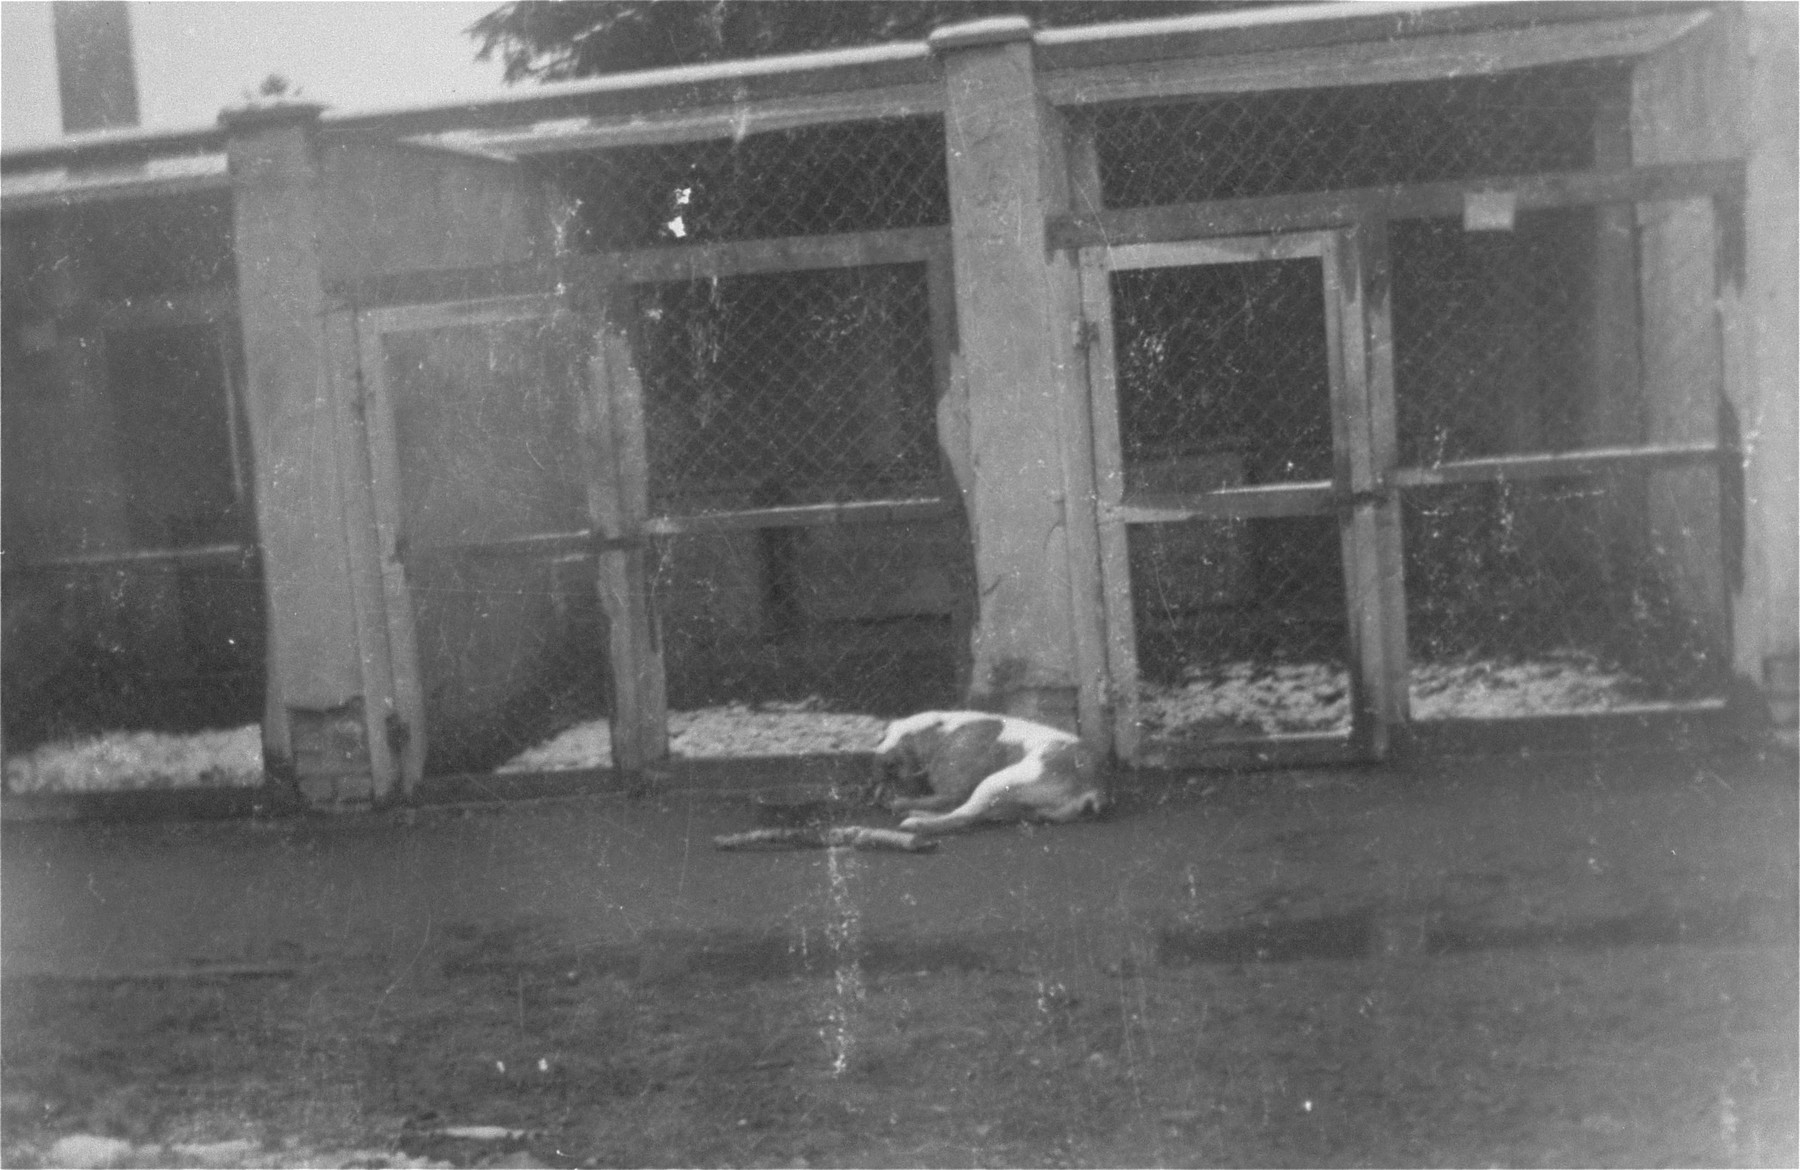 An SS guard dog lies in front of the kennel at Dachau.